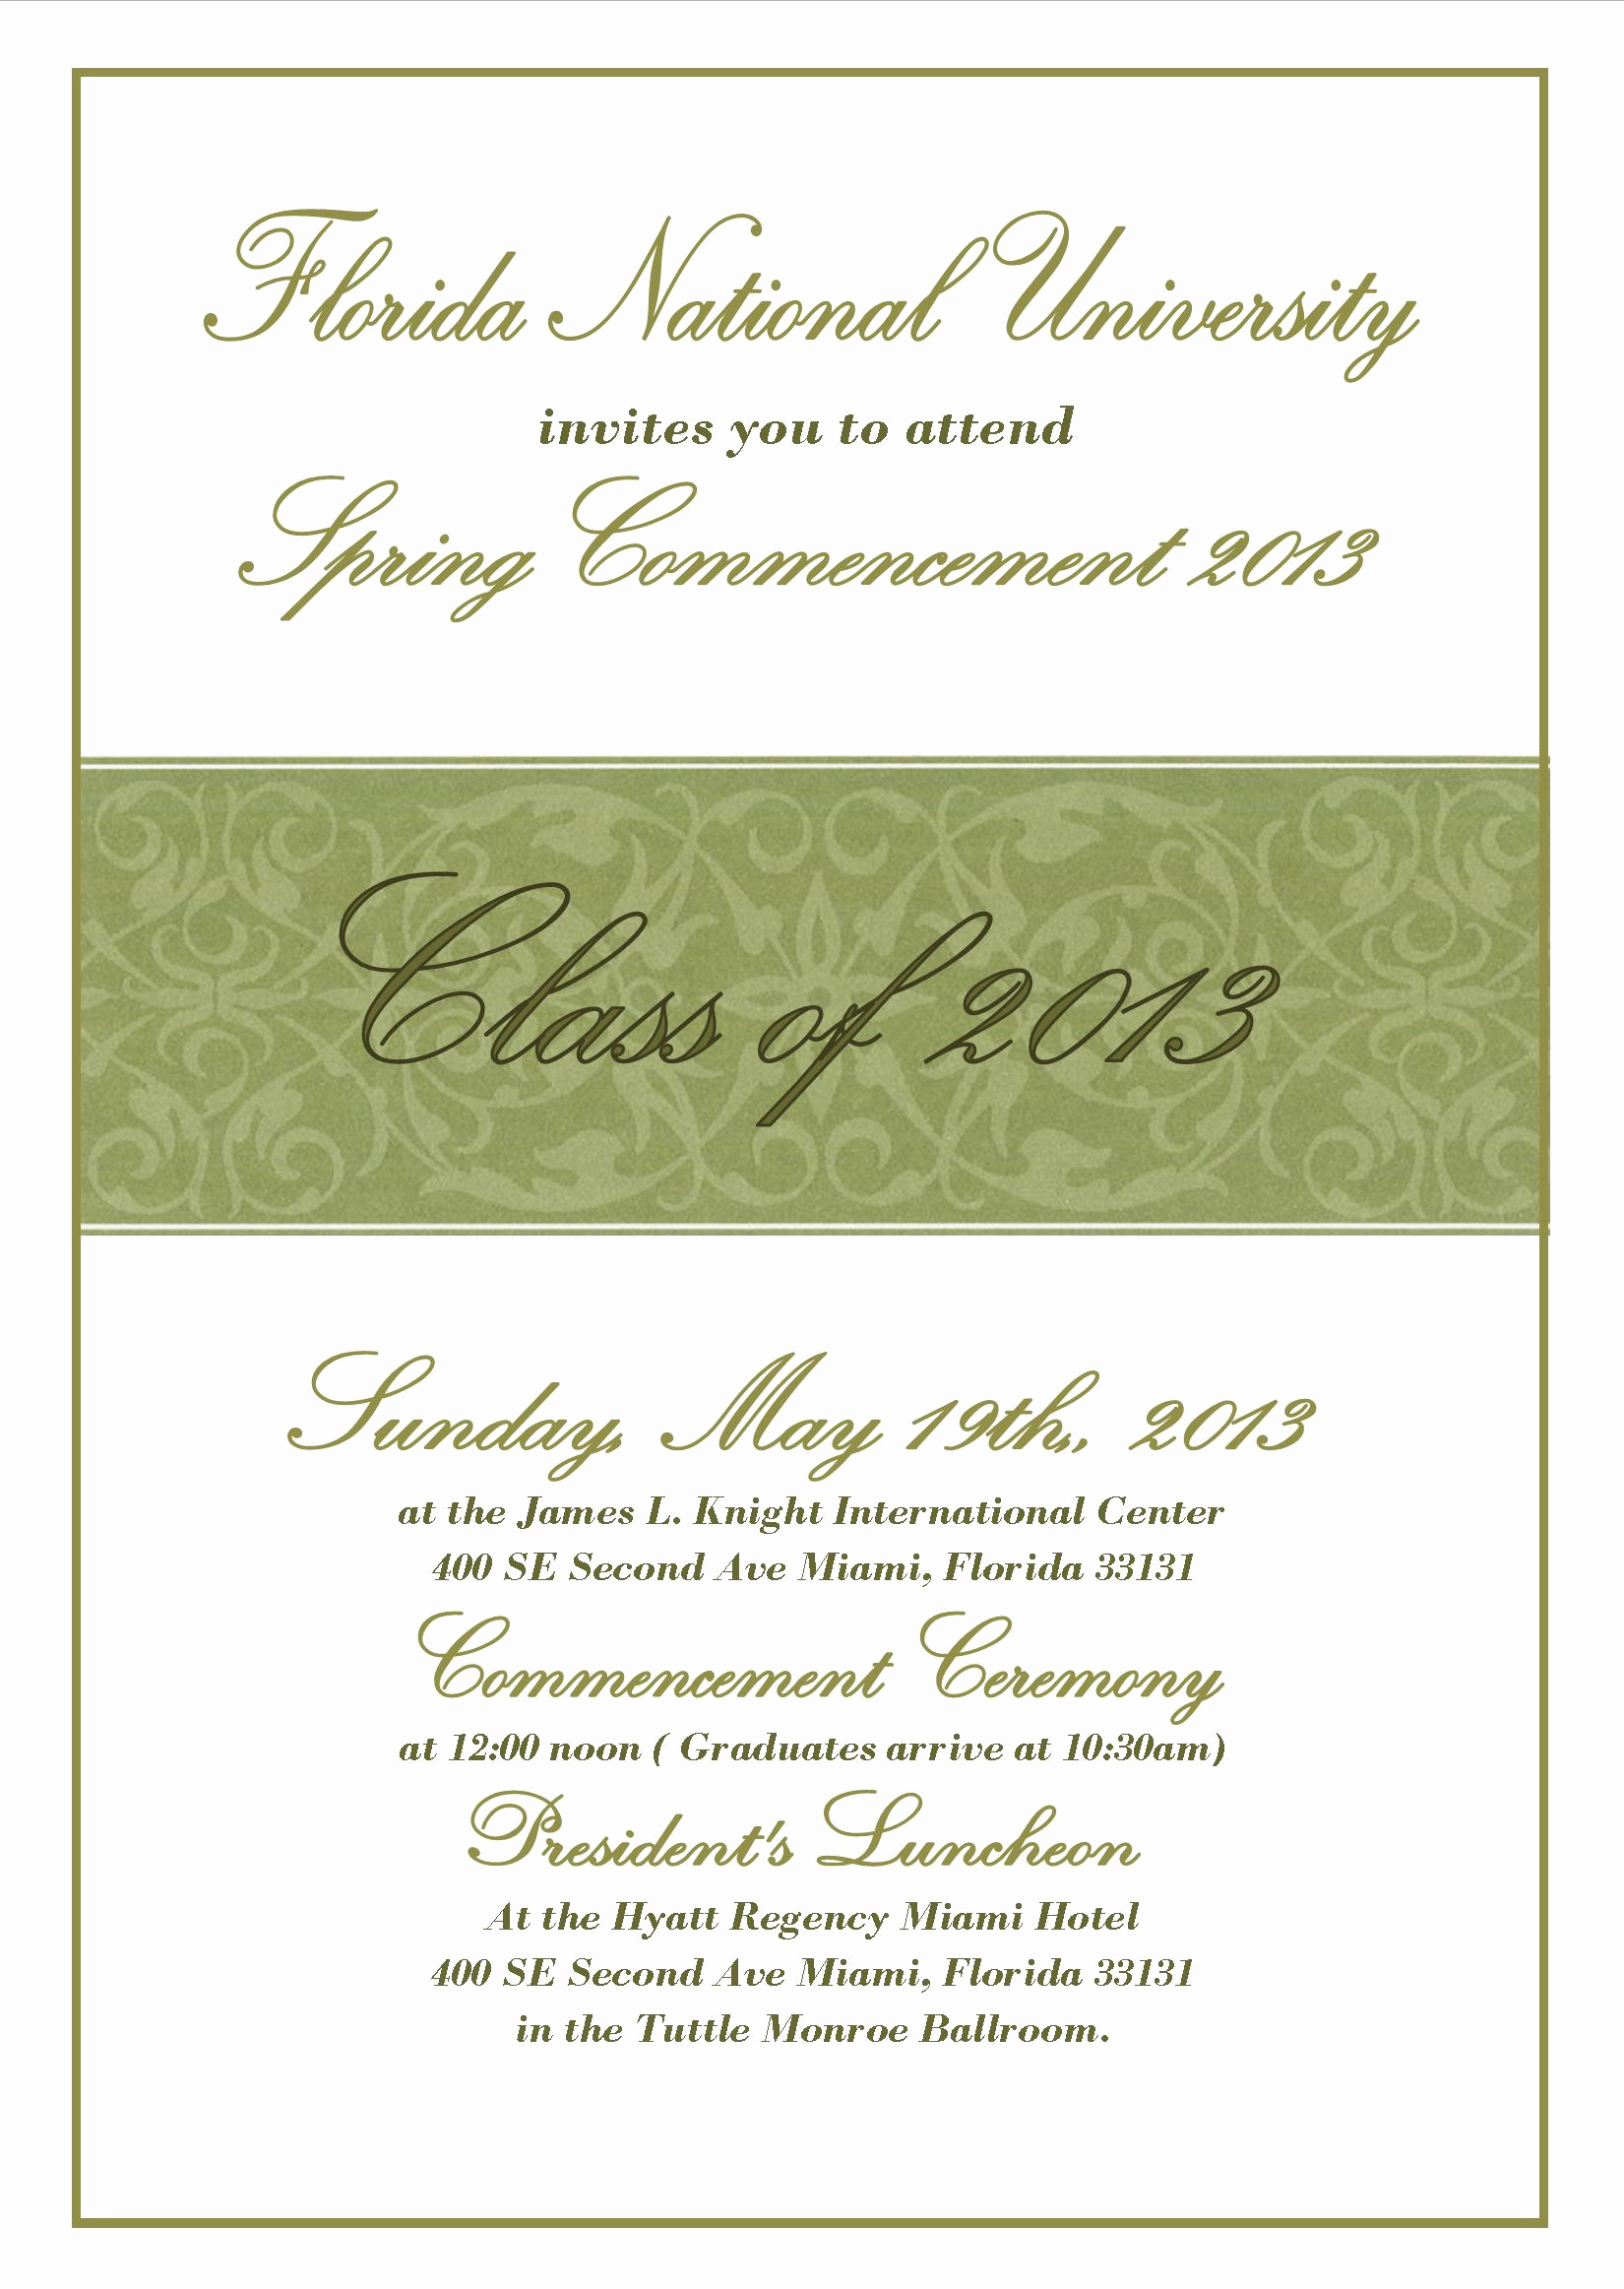 University Graduation Invitation Templates Lovely Mencement Ceremony Invitation